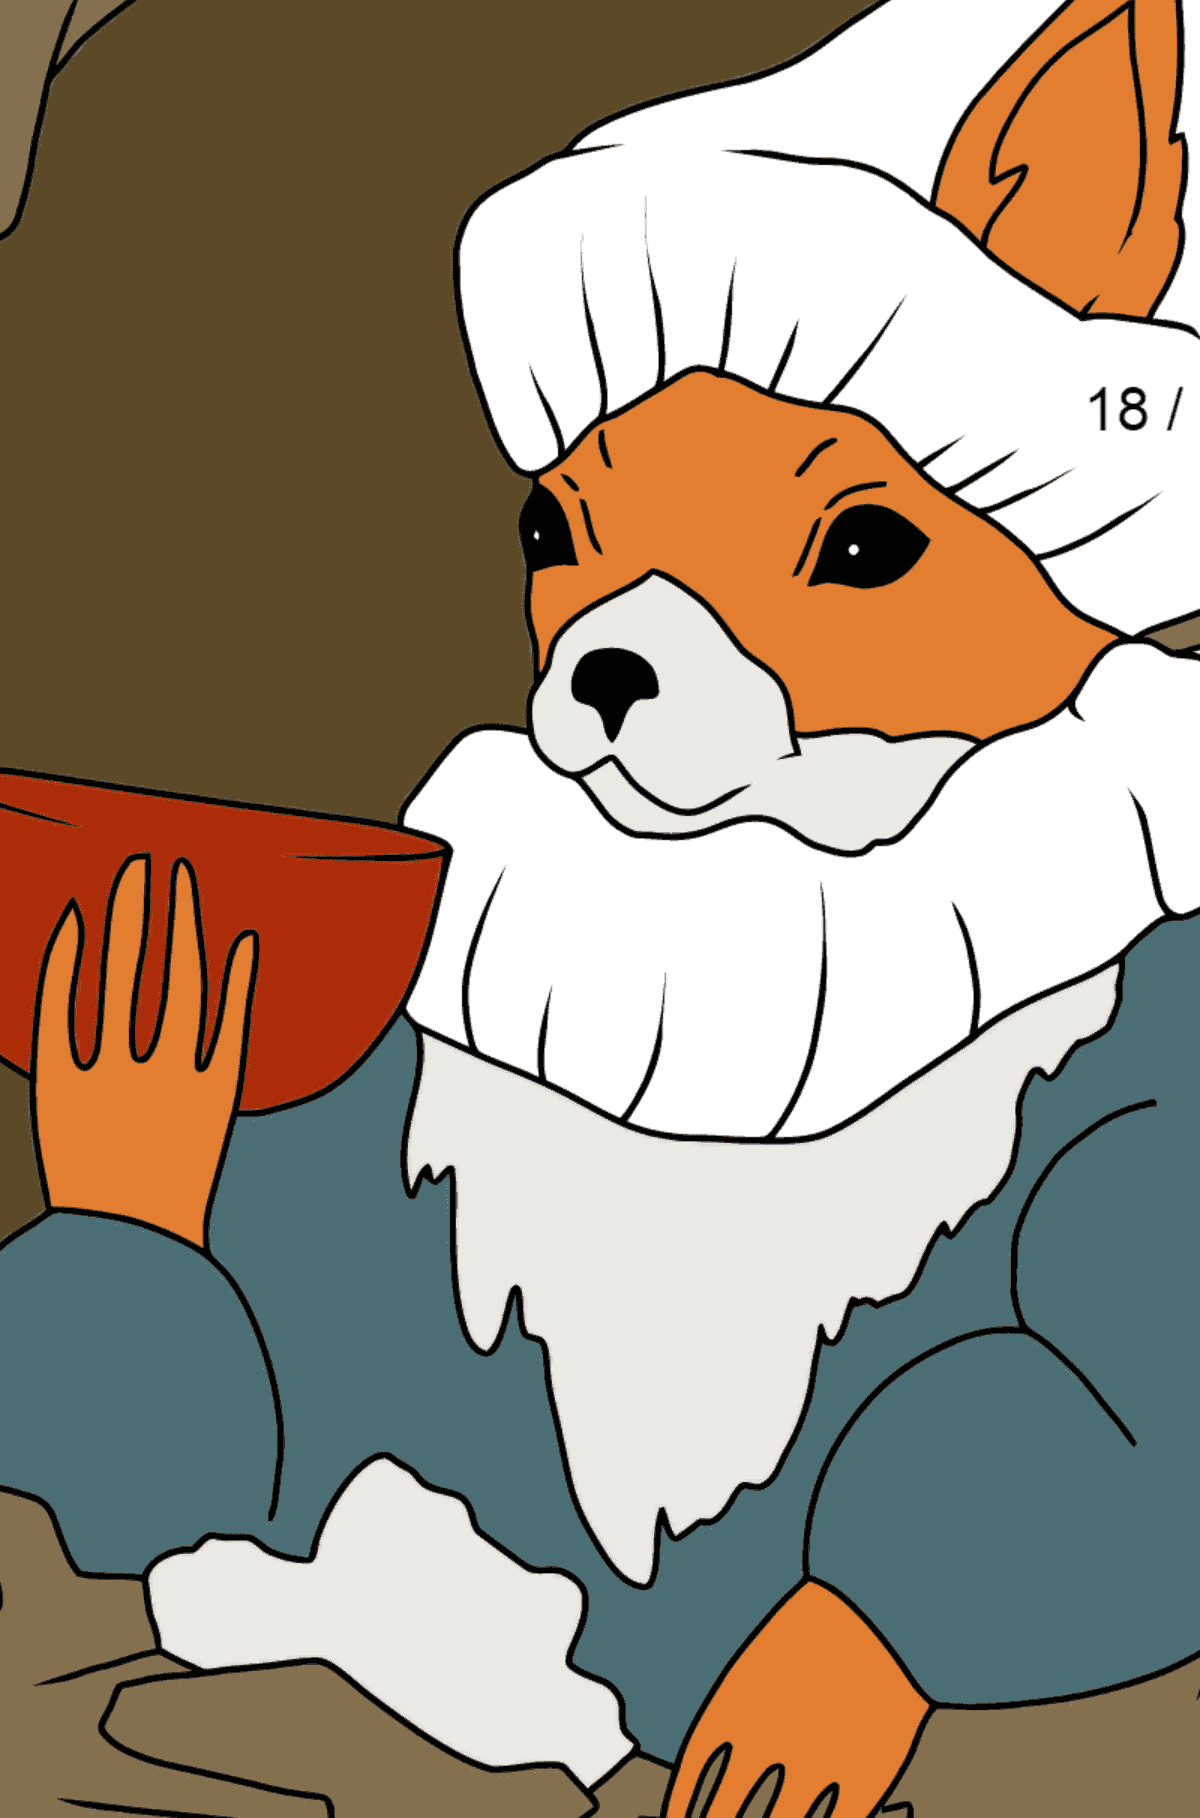 Winter Coloring Page - A Squirrel in a Cozy Burrow is Drinking Tea for Children  - Color by Number Division